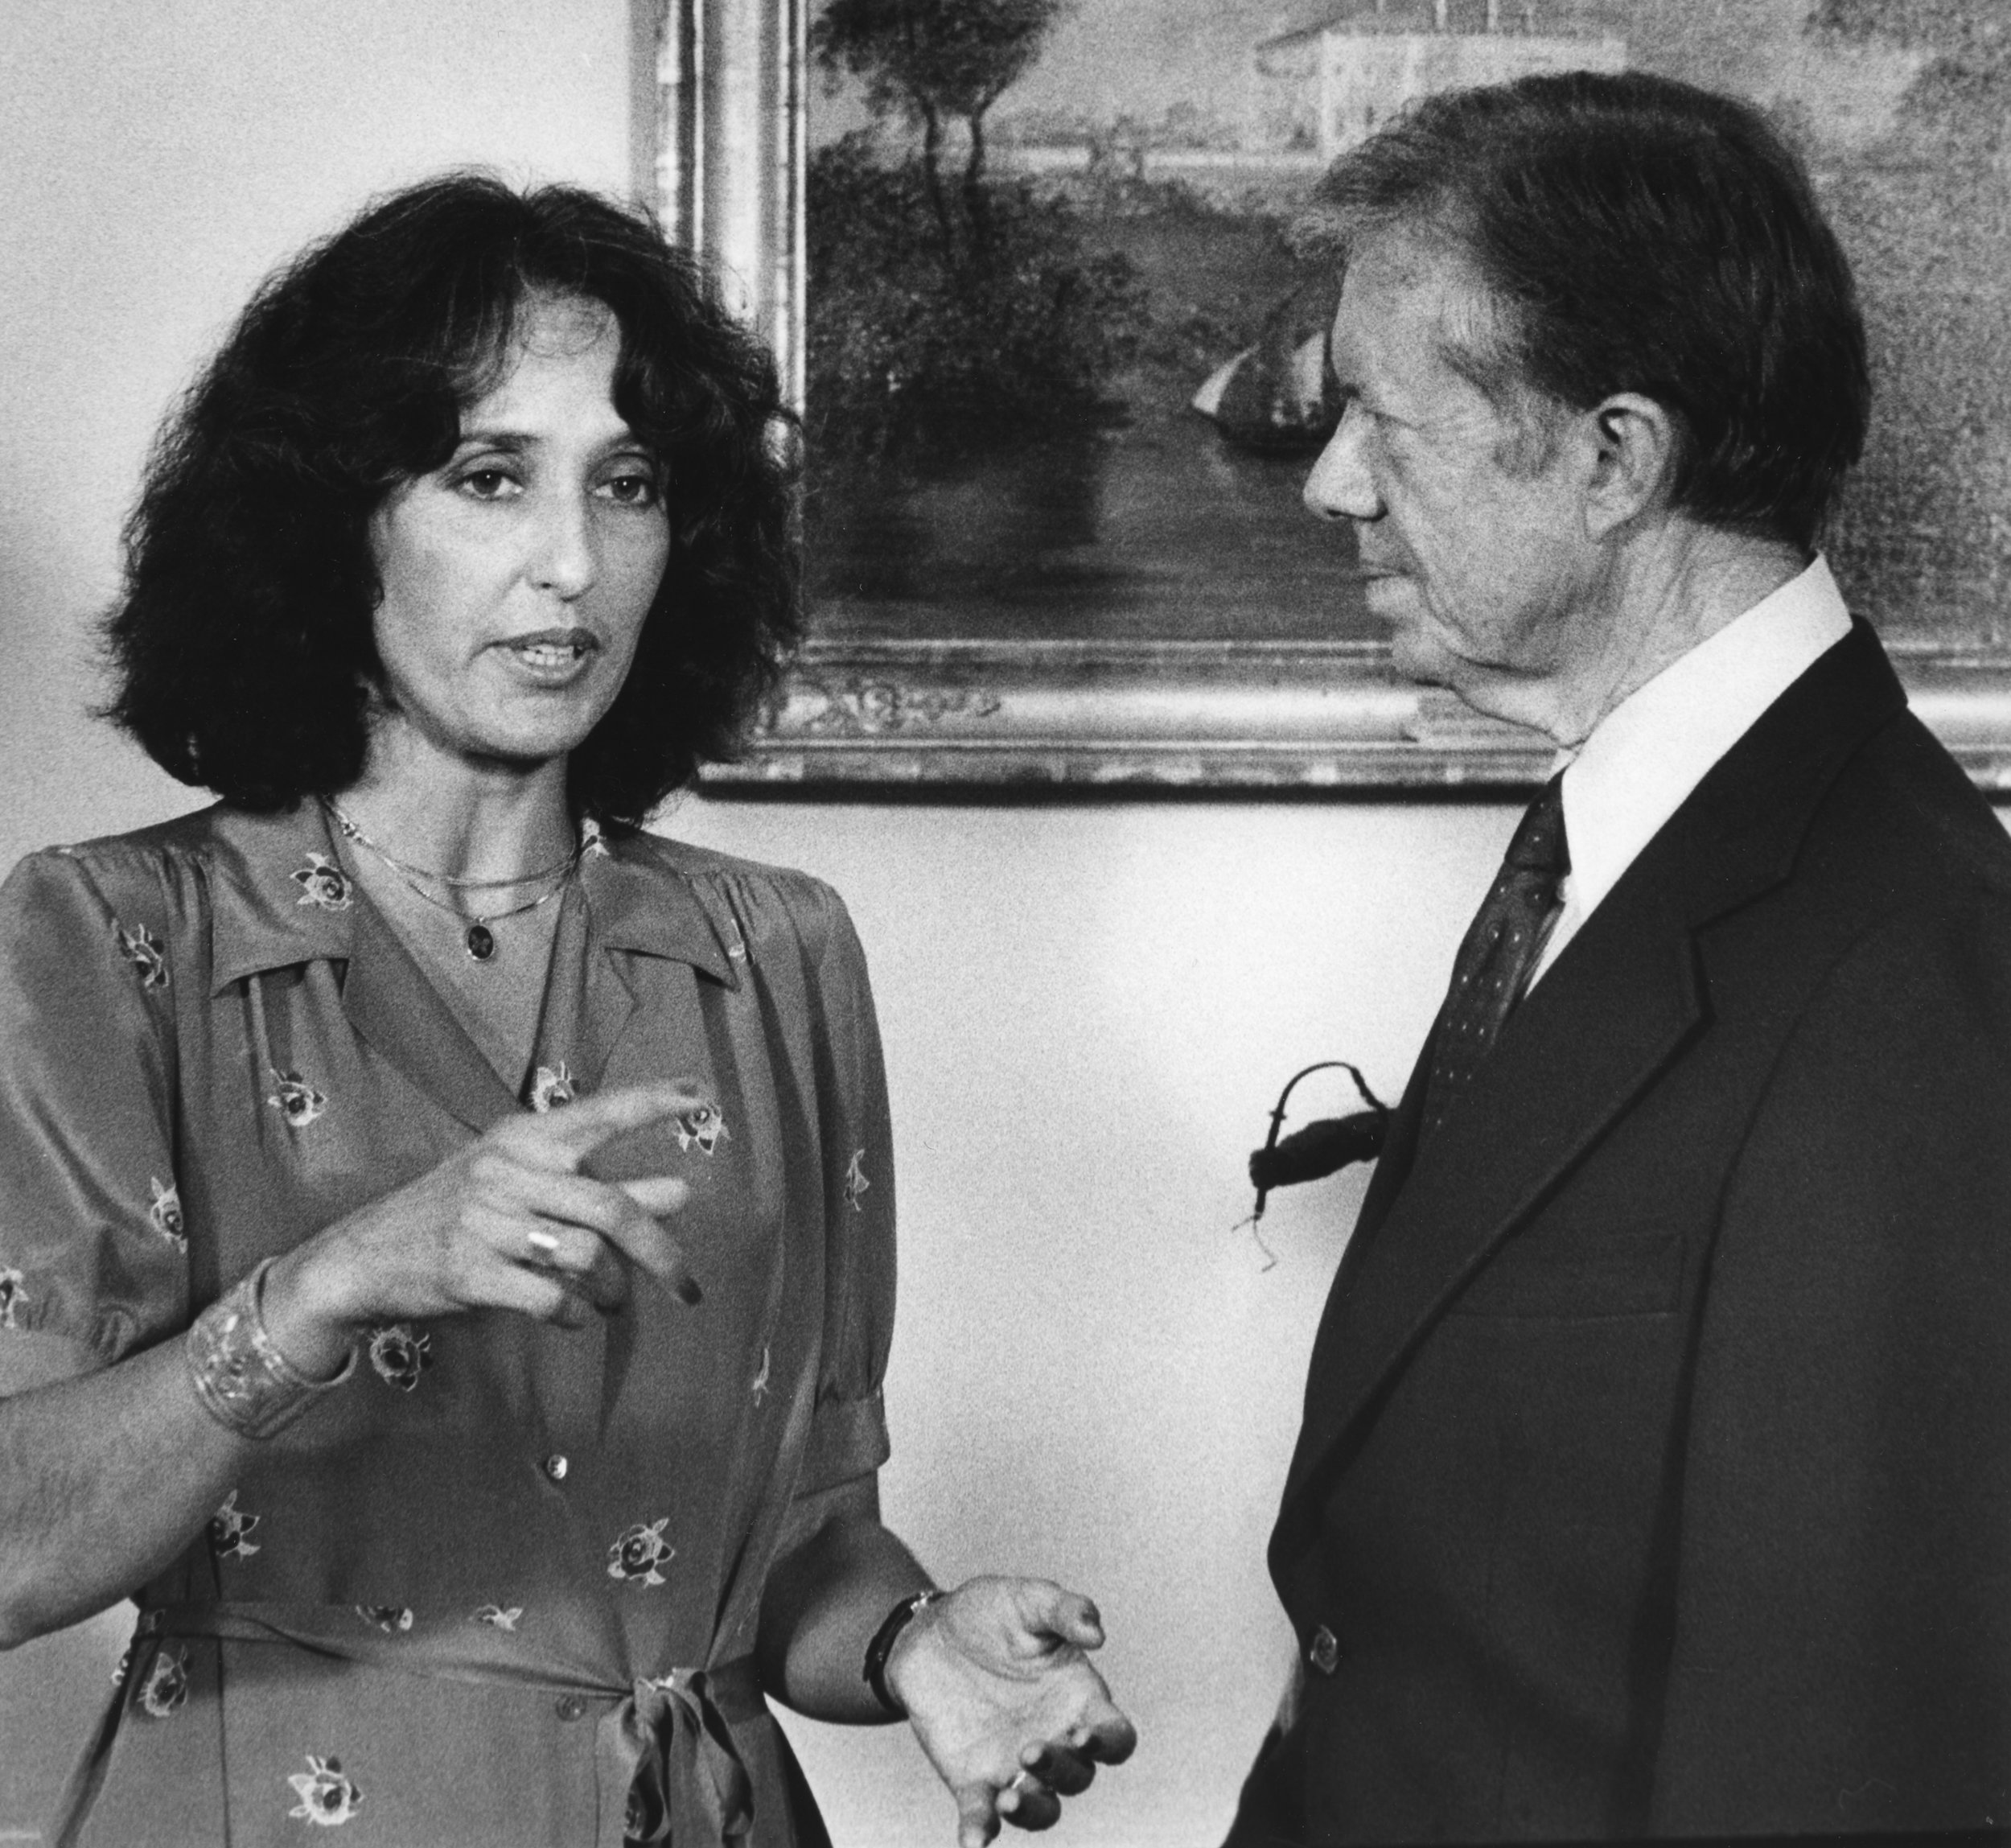 President Carter talks with singer Joan Baez in the Oval Office of the White House in Washington in 1979. Baez just returned from a fact-finding trip in Southeast Asia. (UPI Photo/Frank Cancellare/Files)